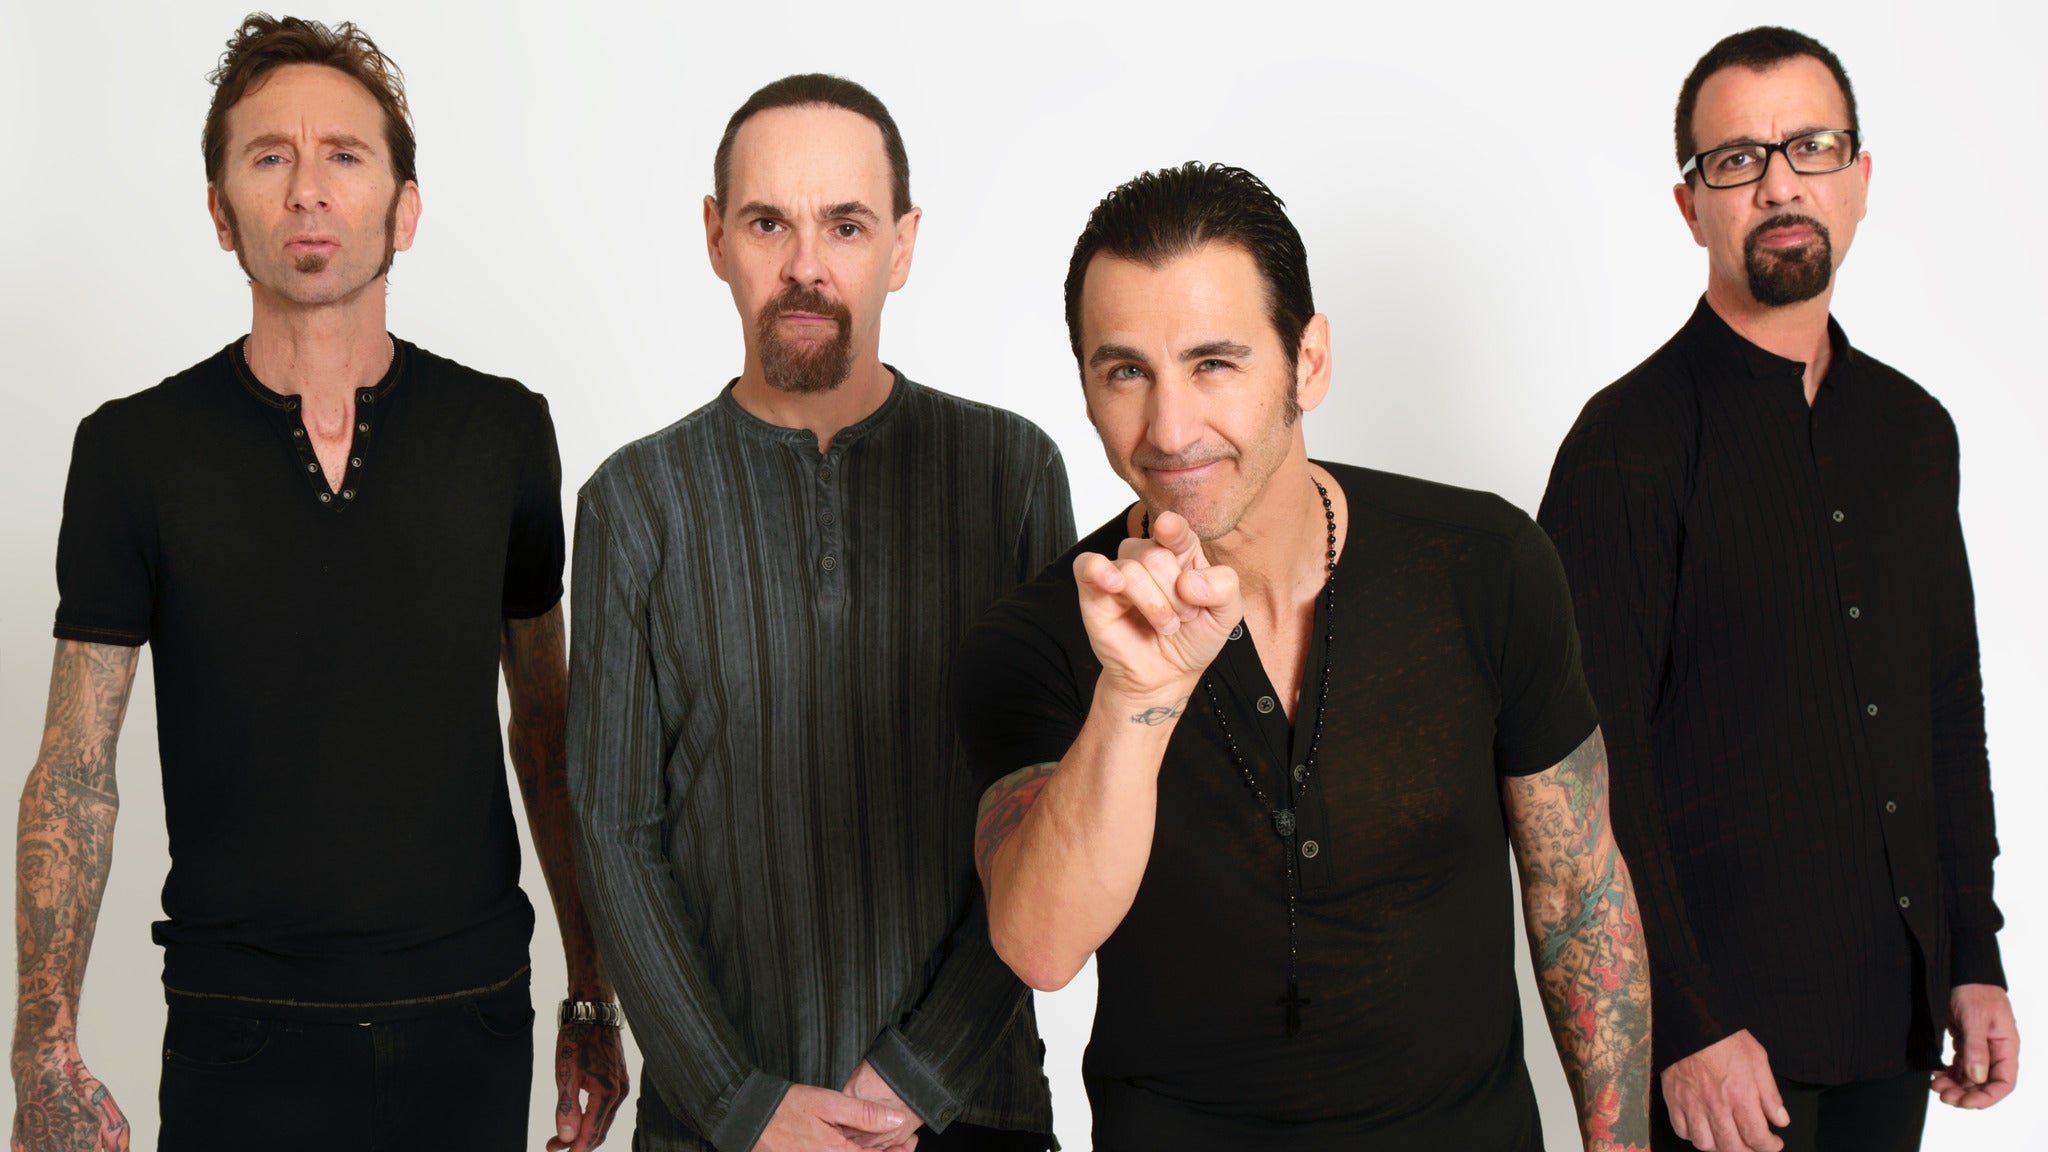 Godsmack / Shinedown at XFINITY Theatre